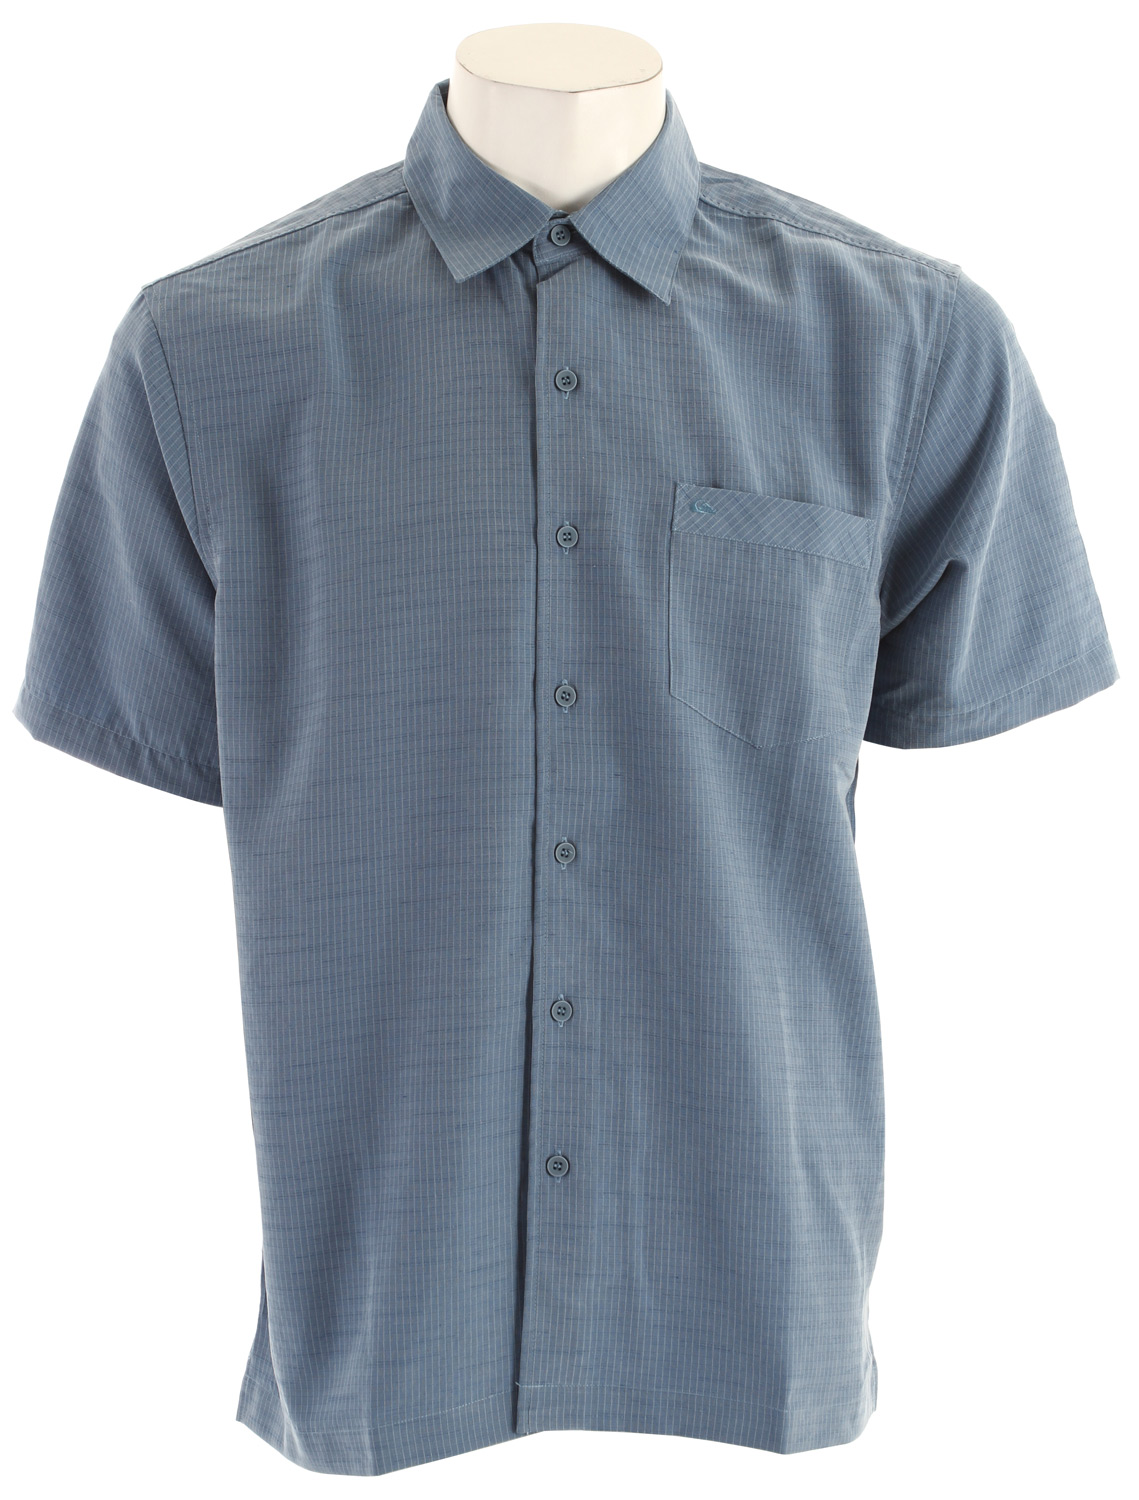 Surf Short sleeve yarn dye shirt with chest pocket and pickstitch detail. 54% polynosic, 46% polyester slub - $34.95